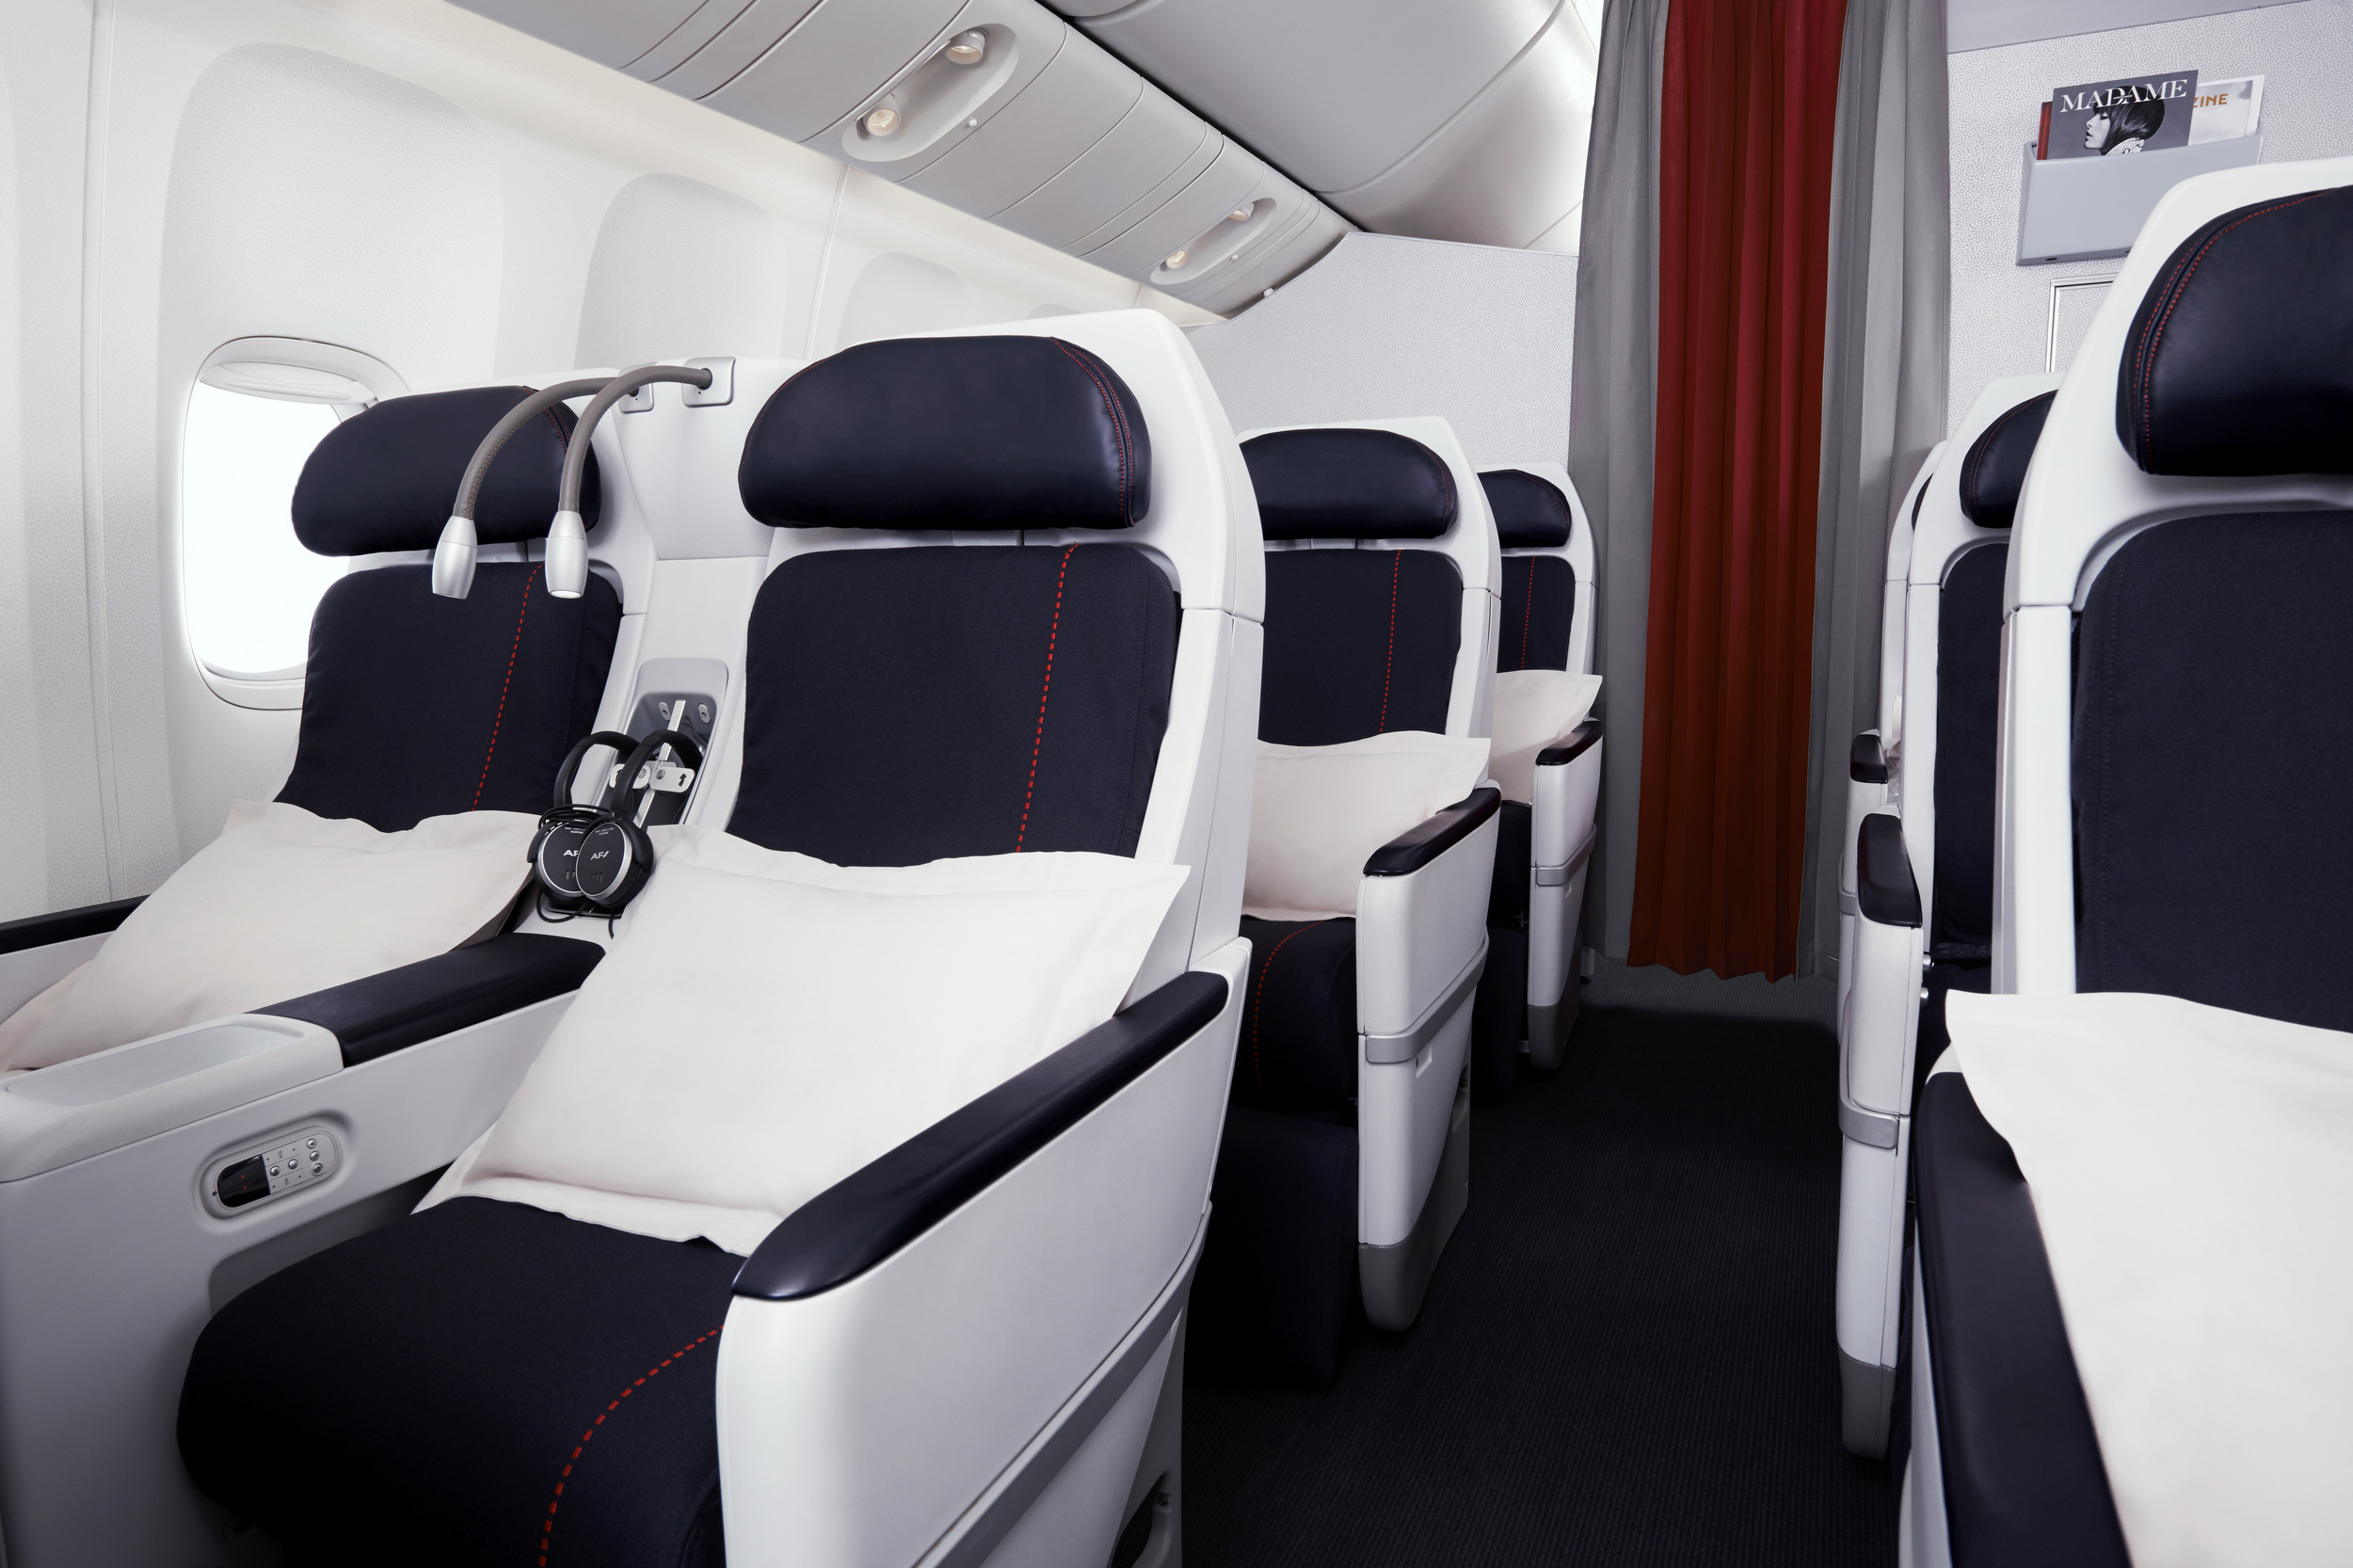 World 39 s best premium economy seats aol travel uk for Air france vol interieur